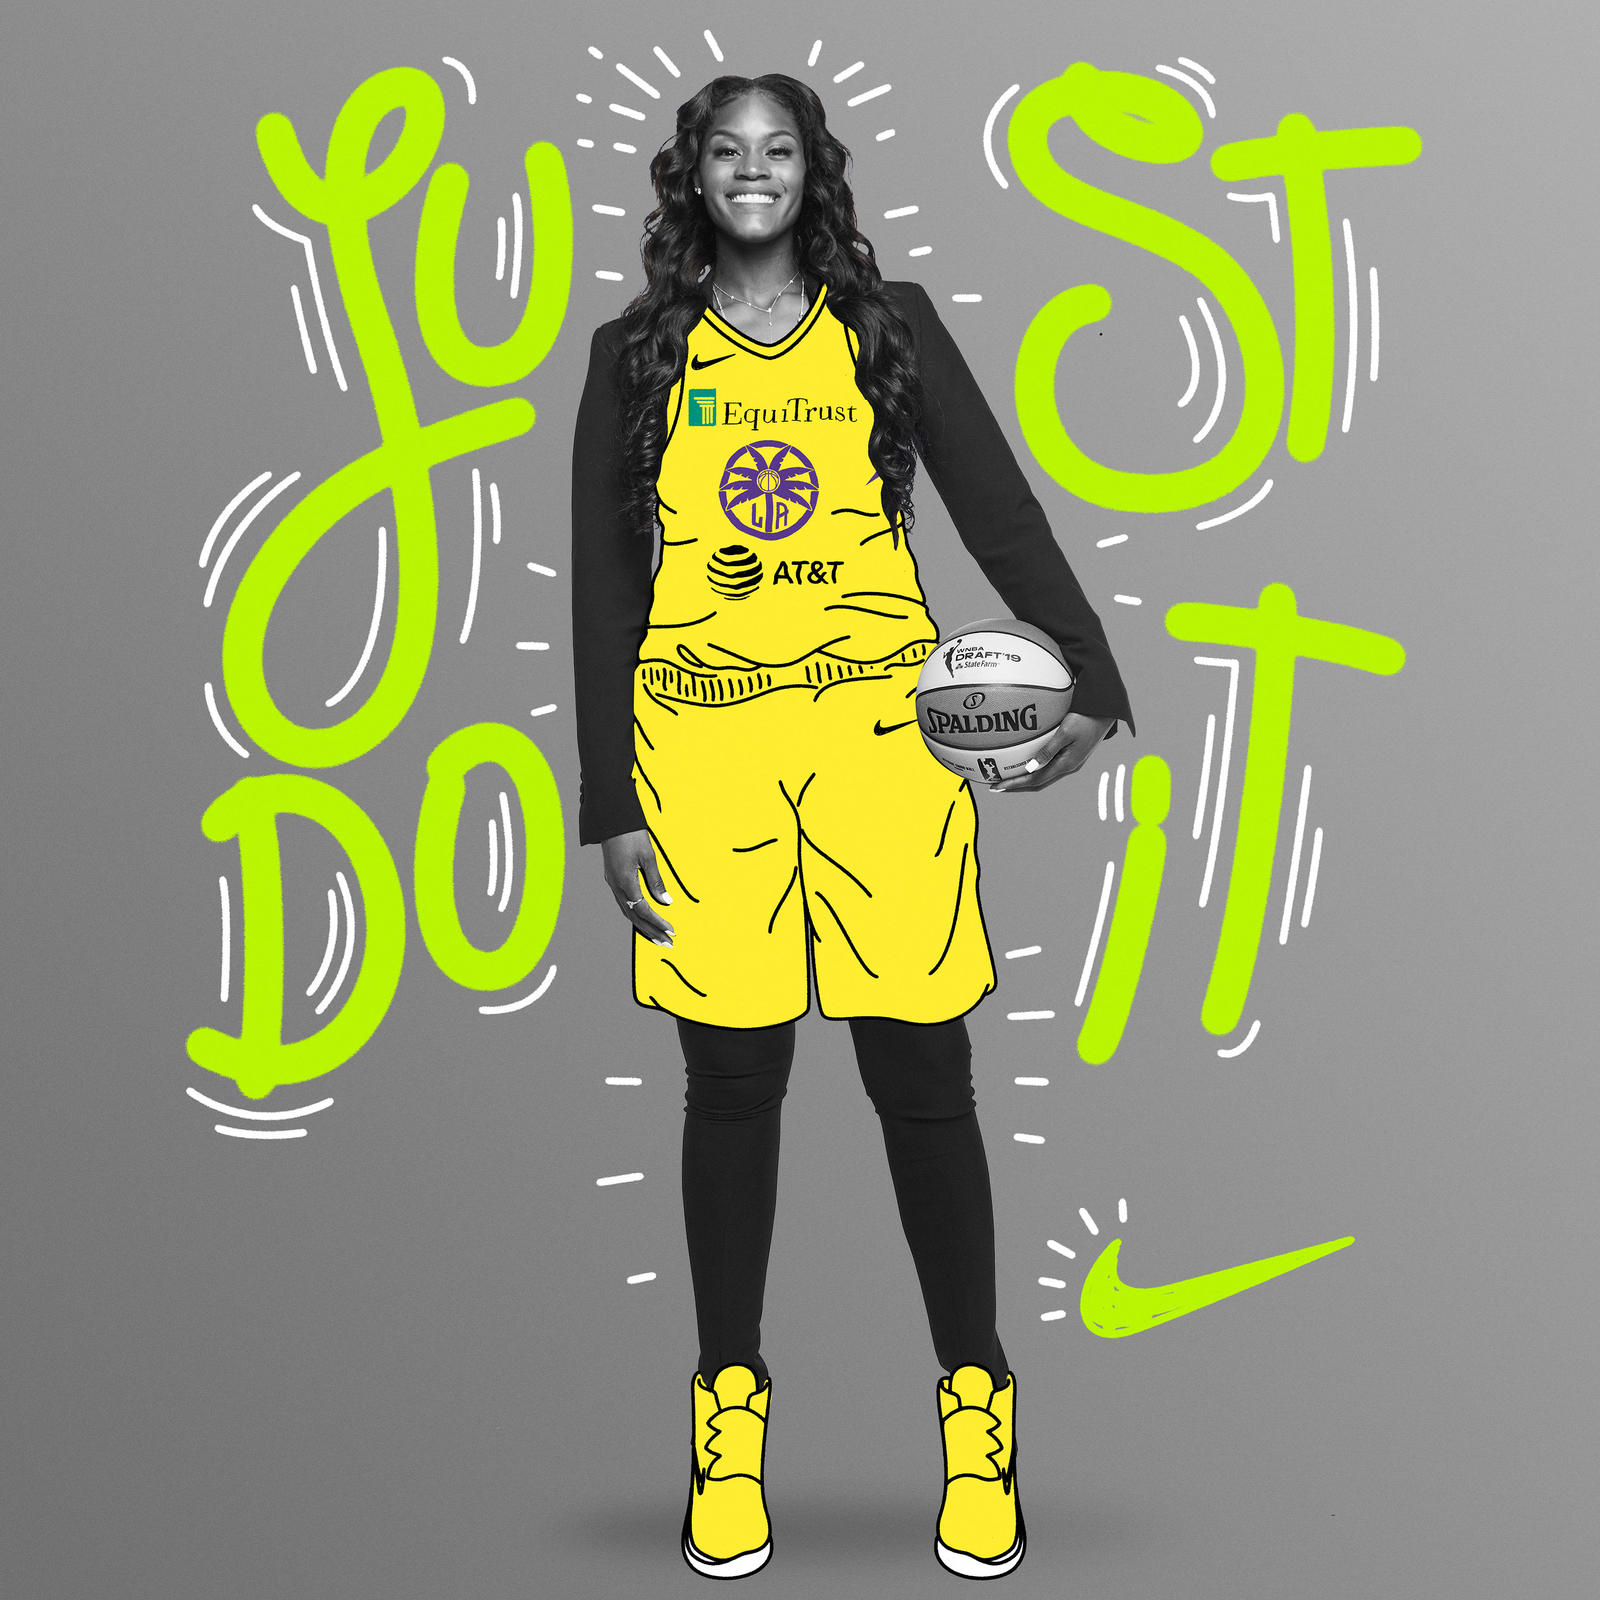 The 6'7″ center won a national championship in 2019 and ends her collegiate career with the highest career field goal percentage in Lady Bears history. Brown is thrilled to join the Nike family after wearing the brand since her youth playing days.